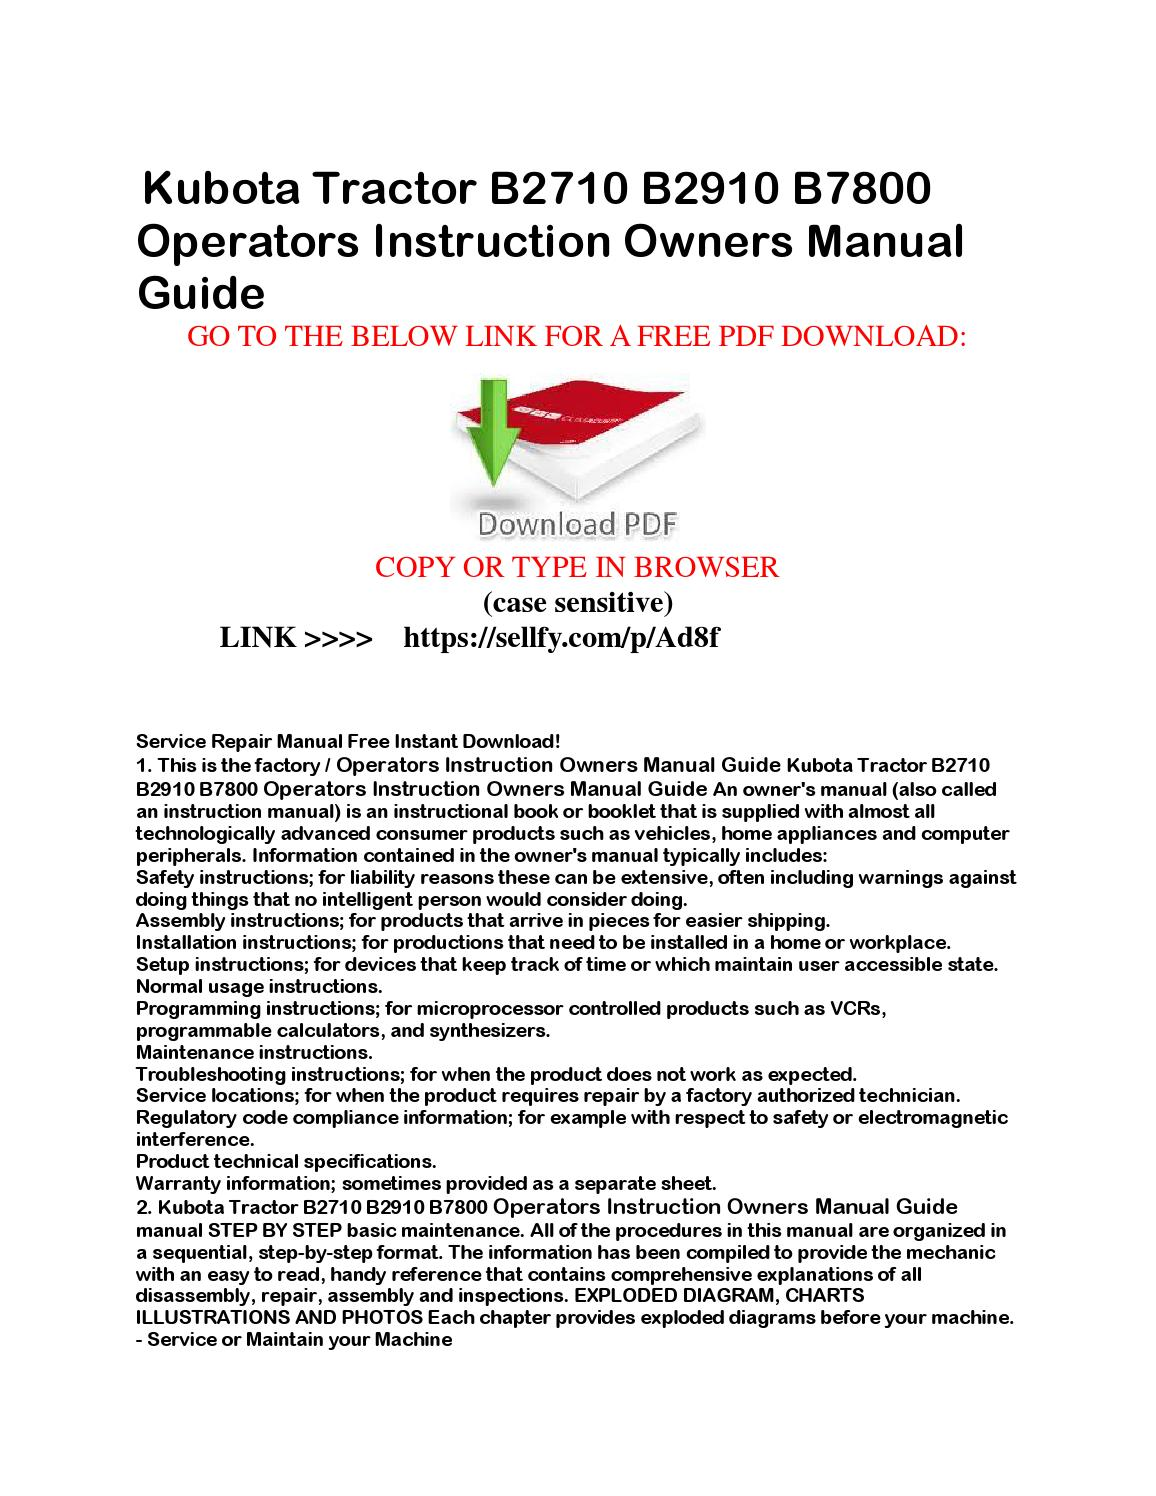 Kubota L35 Owner Manual Wiring Diagram B26 Tlb Bx2200 Owners Free Array Operators Download Rh Aplacetonest Com